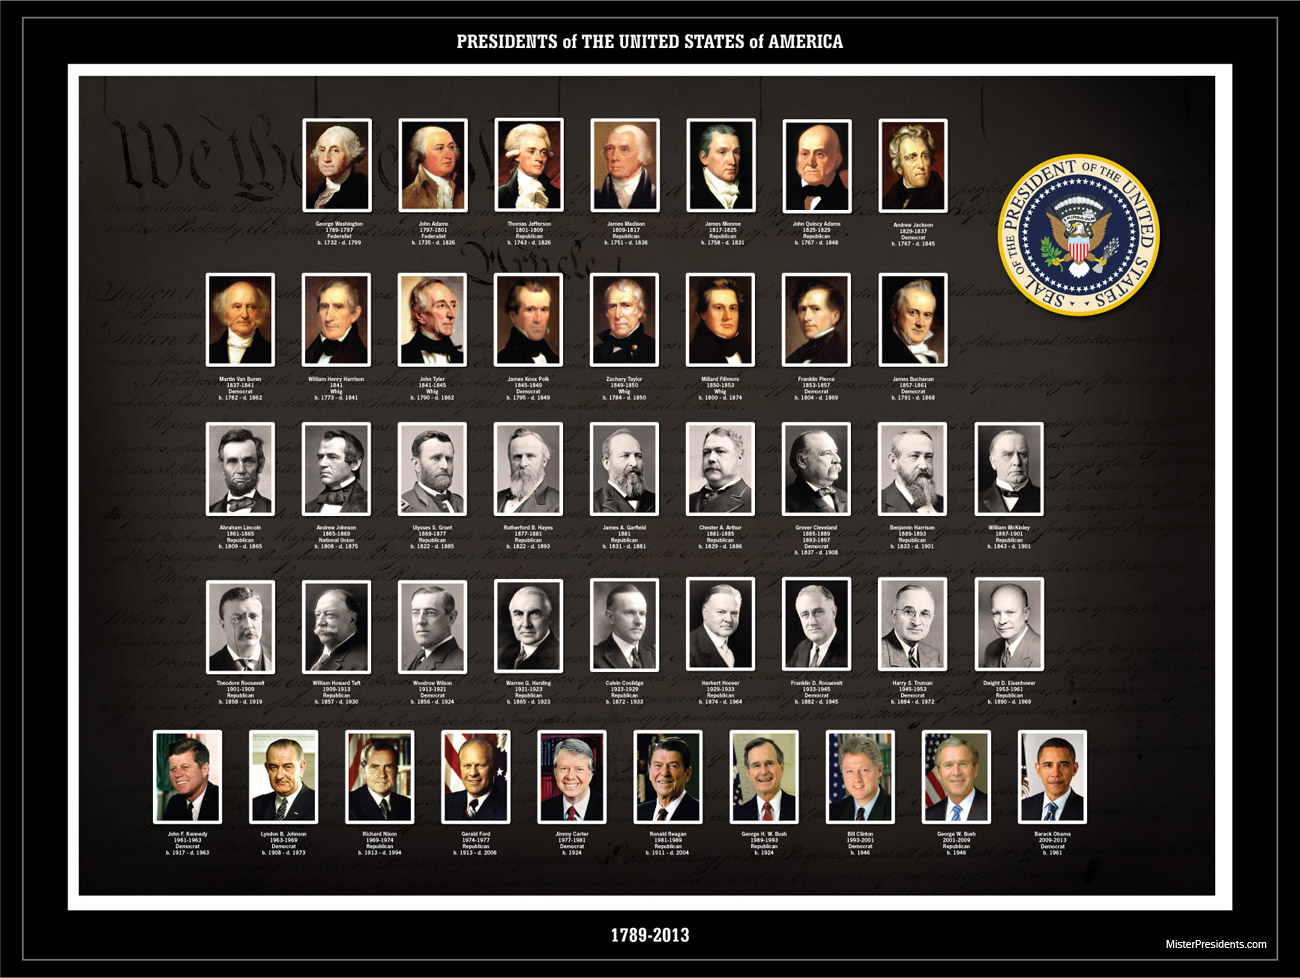 All U.S. Presidents But One Descended From King John Of England?